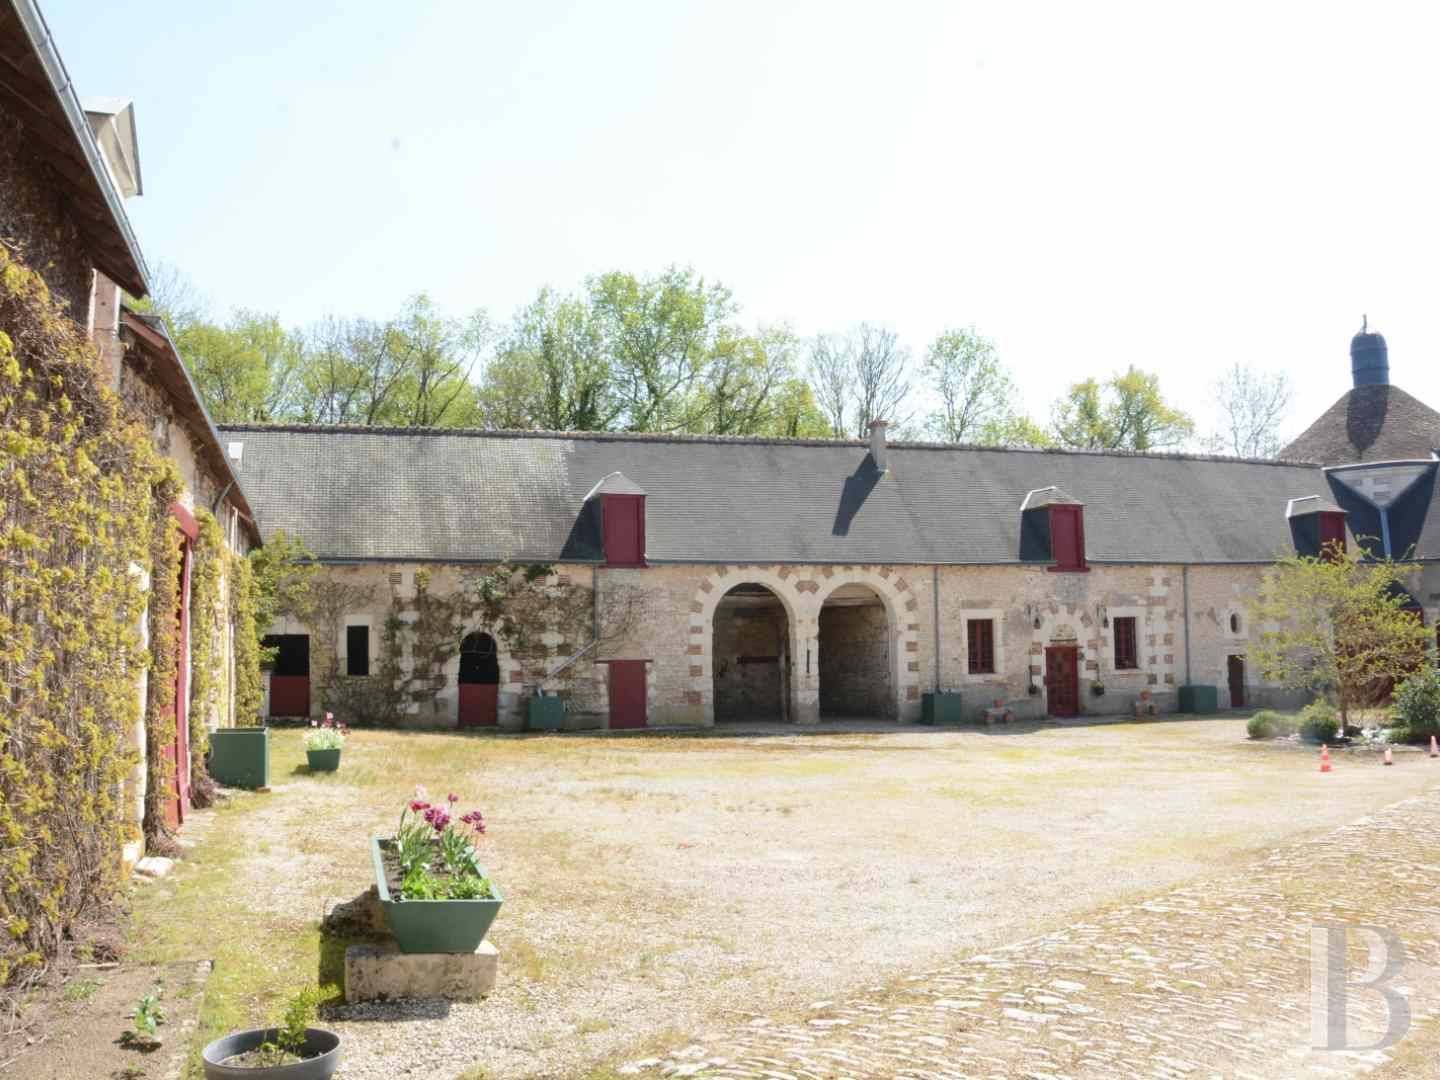 property for sale France center val de loire hunting grounds - 9 zoom